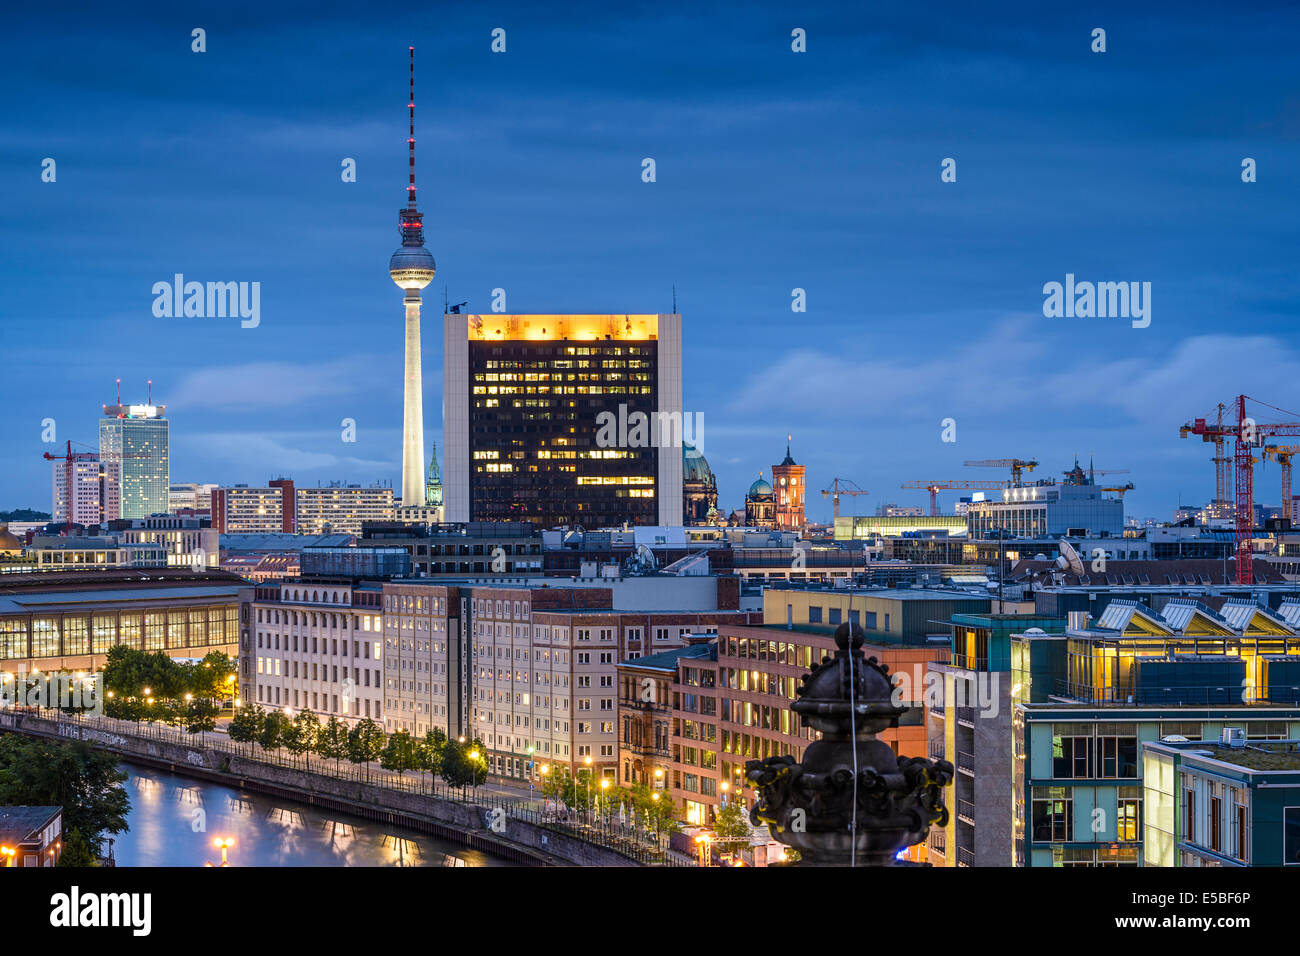 Berlin, Allemagne city skyline at night. Photo Stock